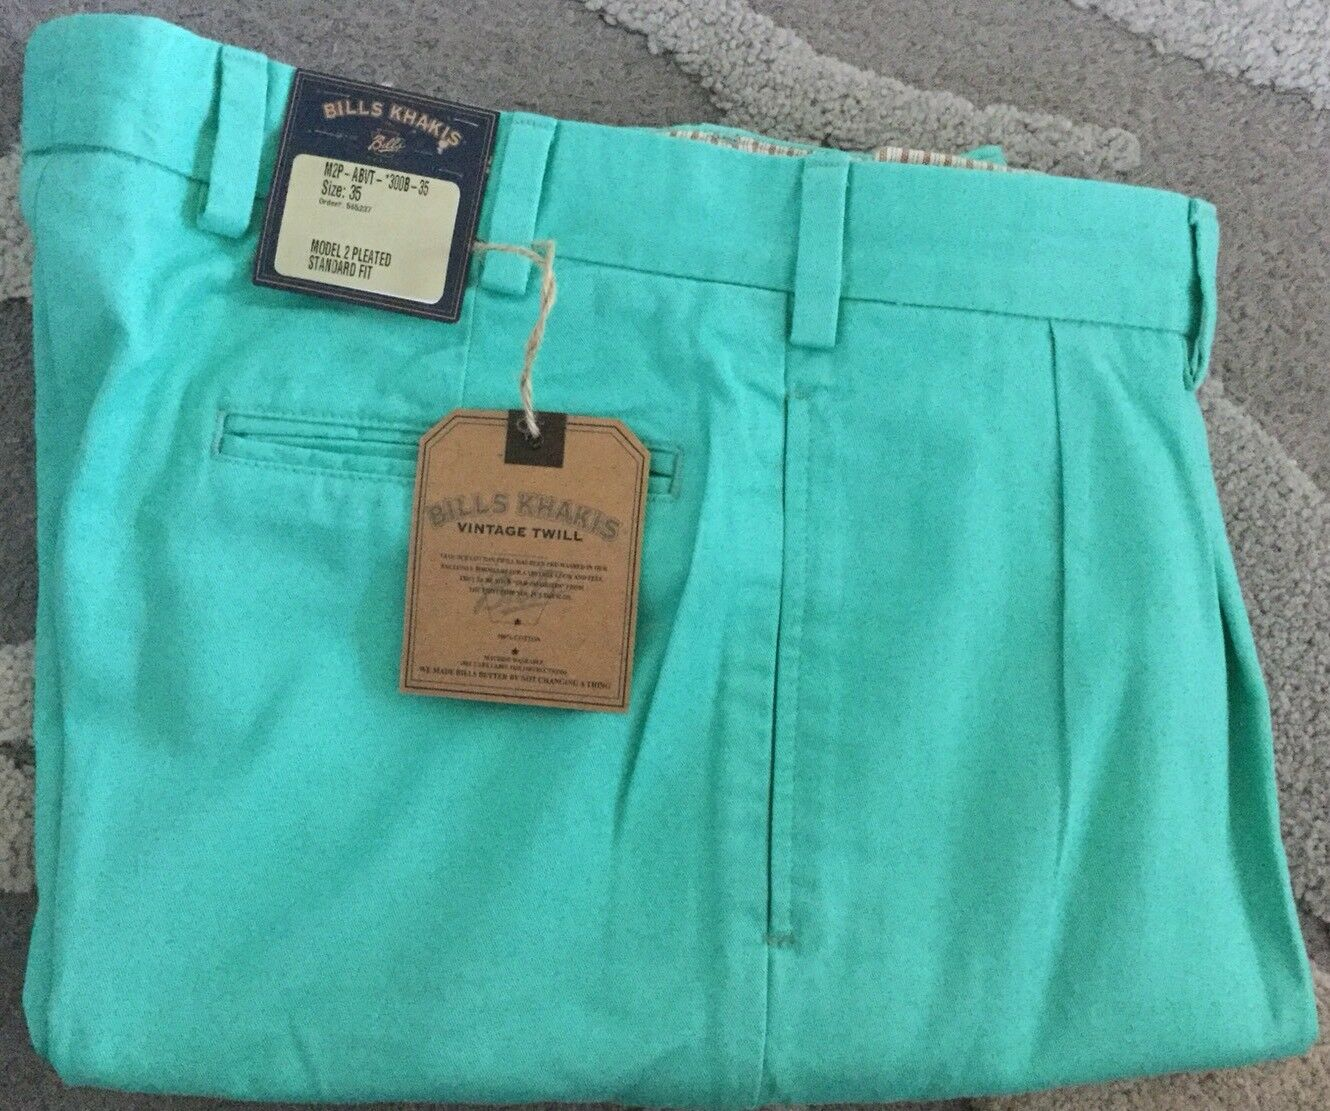 BRAND NEW -Bills khakis M2P-ABVT PLEATED Size 35X30 AQUA Vintage Twill MSRP